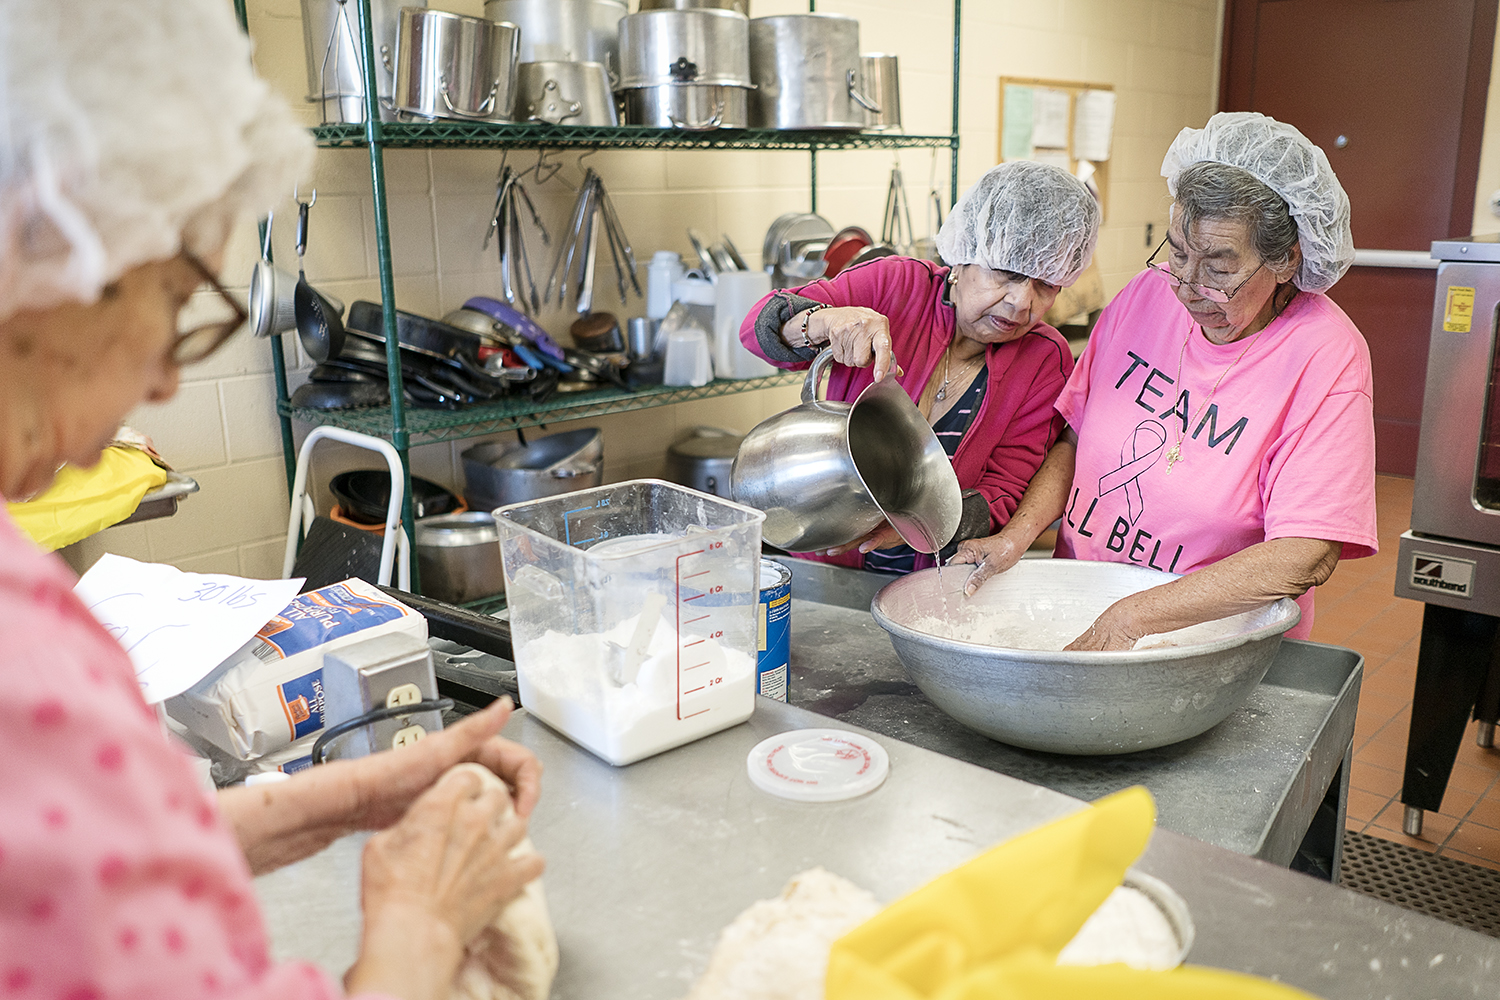 Flint, MI - Tuesday, October 17, 2017: Flint residents Connie Aguilar, left, 81, kneads a ball of masa on the countertop while Vina Shattuck, 70, center, slowly pours water into the batter for Ofelia Luna, 79, right, in the kitchen of the San Juan Diego Activity Center at Our Lady of Guadalupe. The masa will go through many hands before being packaged as stacks of tortillas.